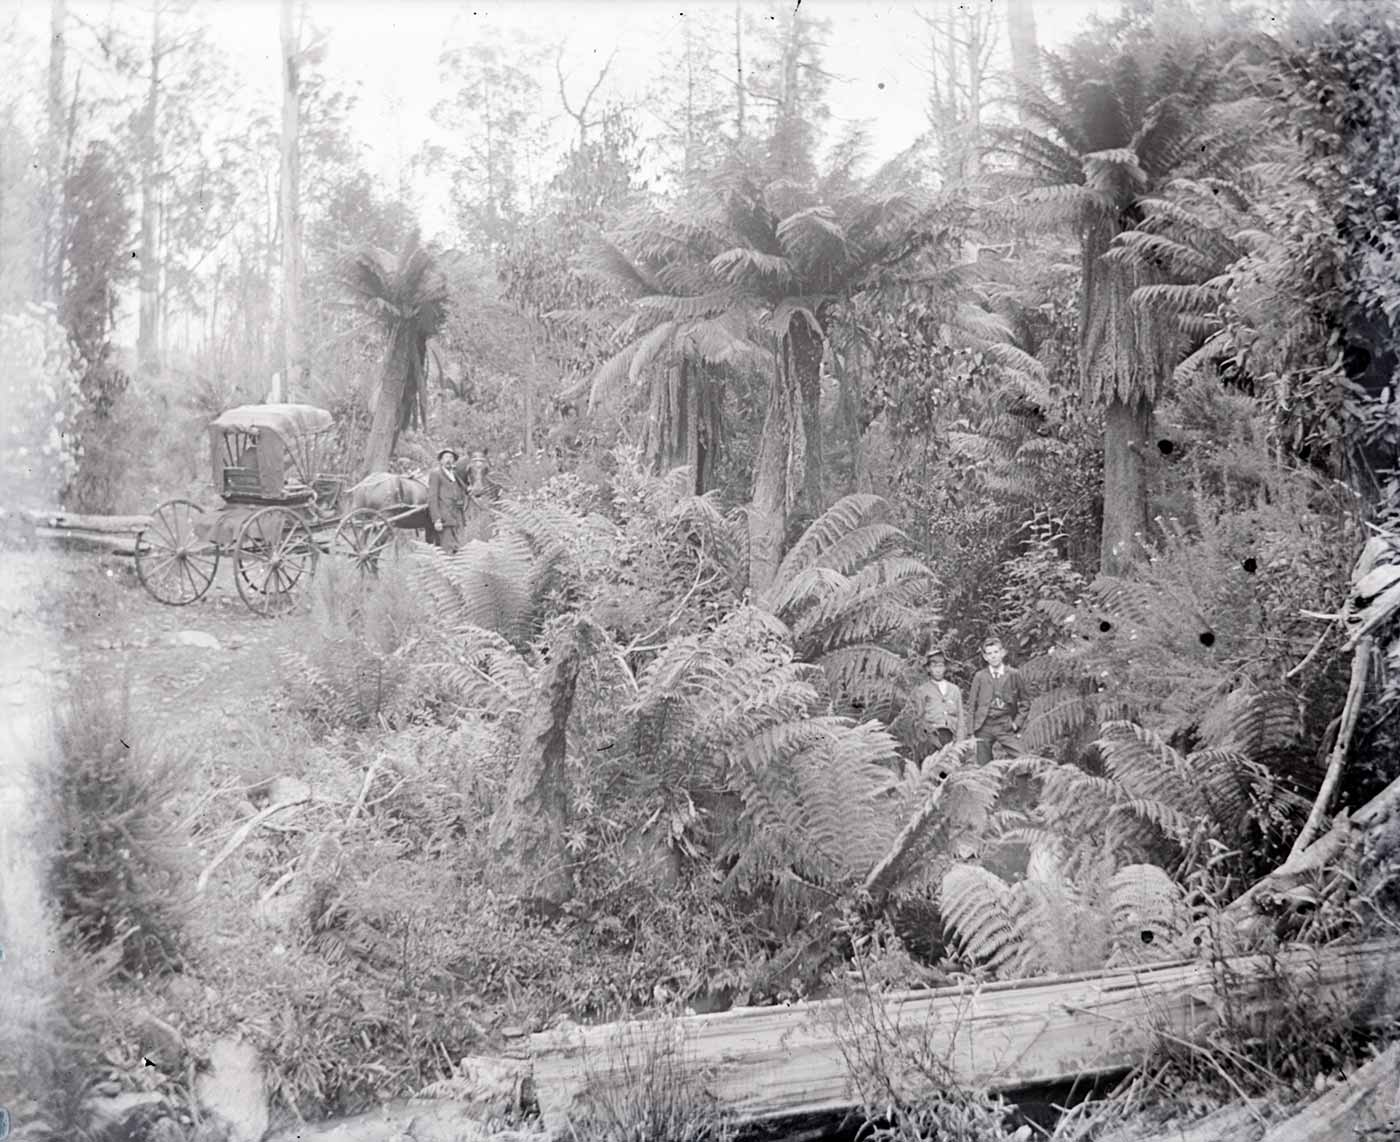 A photographic glass plate negative showing scattered people and a horse-drawn buggy amongst bushland. A man and a woman are visible toward the right side of the image, and a horse-drawn buggy with men beside it can be seen in the background. There are small dots scattered on the right side of the negative. - click to view larger image